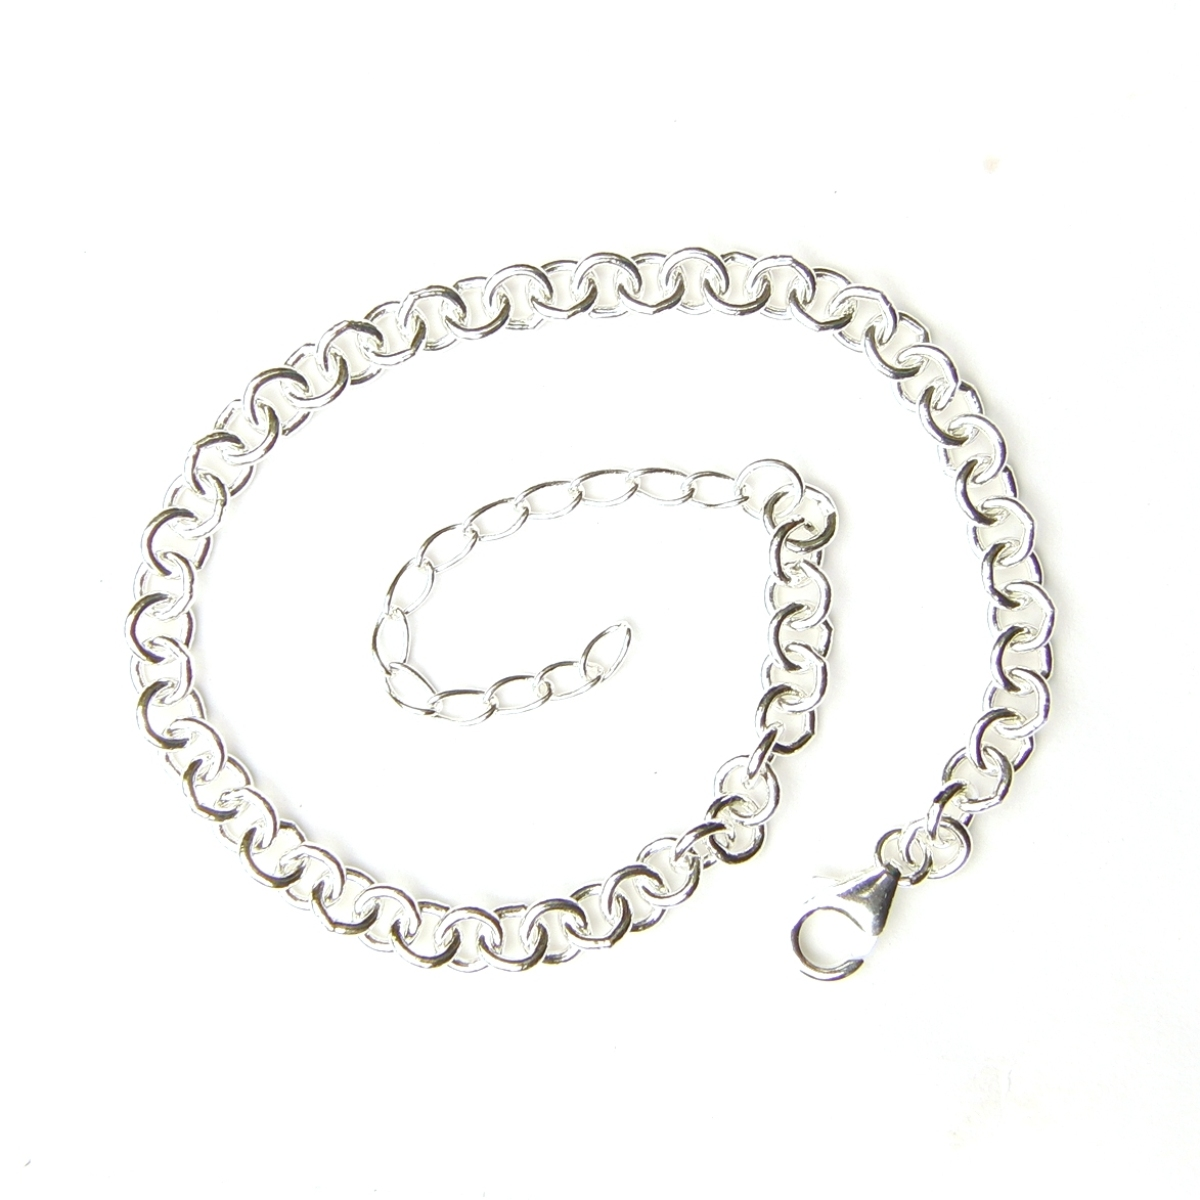 Heavy Weight Silver Charm Bracelet